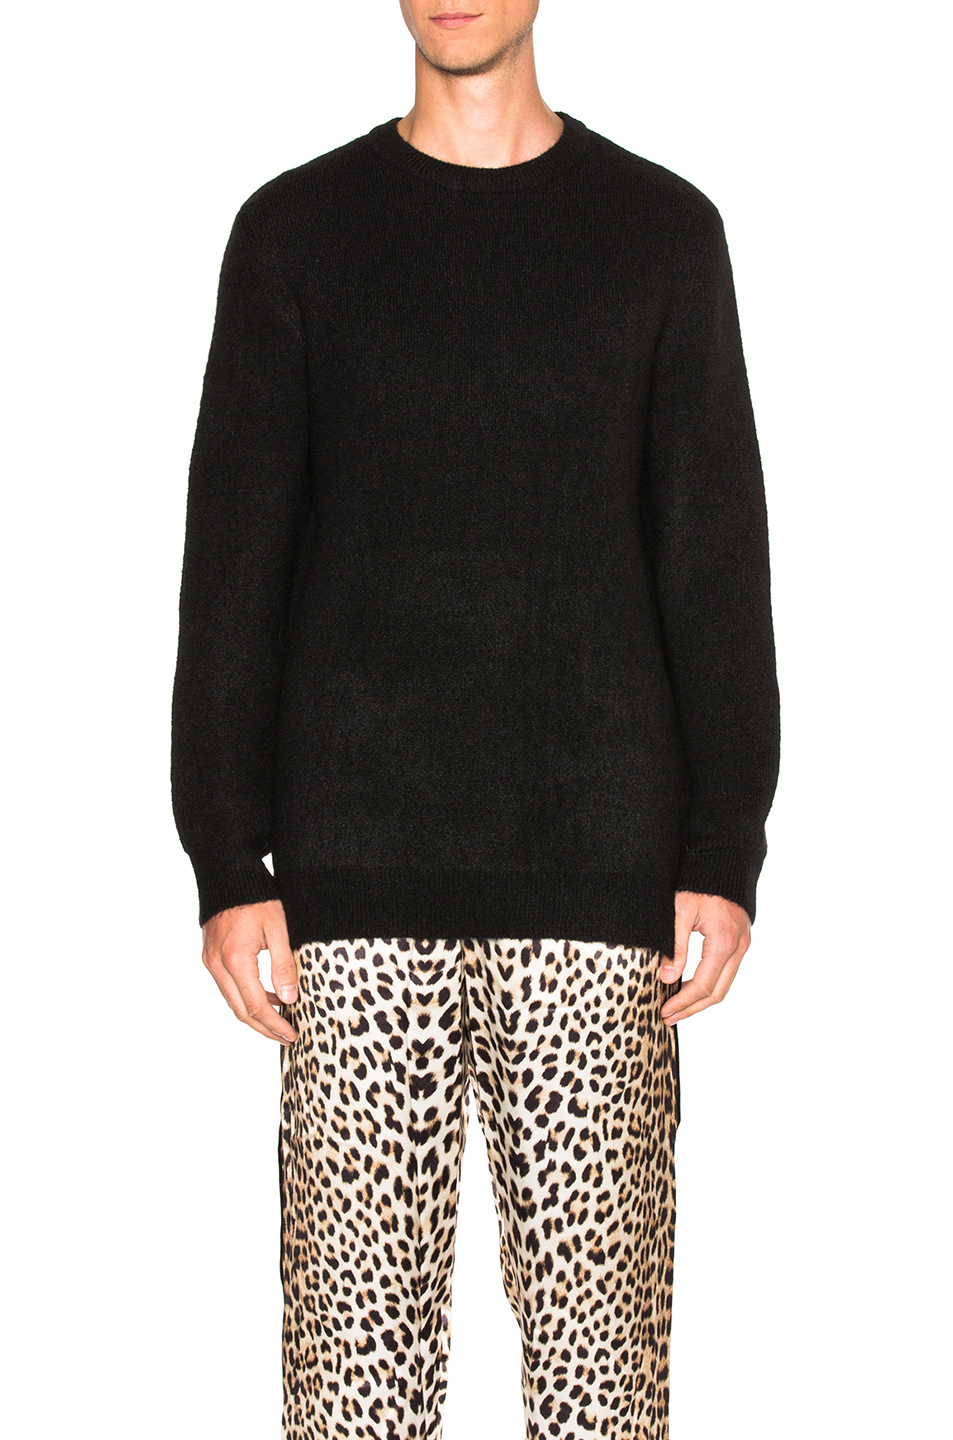 3.1 phillip lim Side Slits Crewneck Pullover in Black